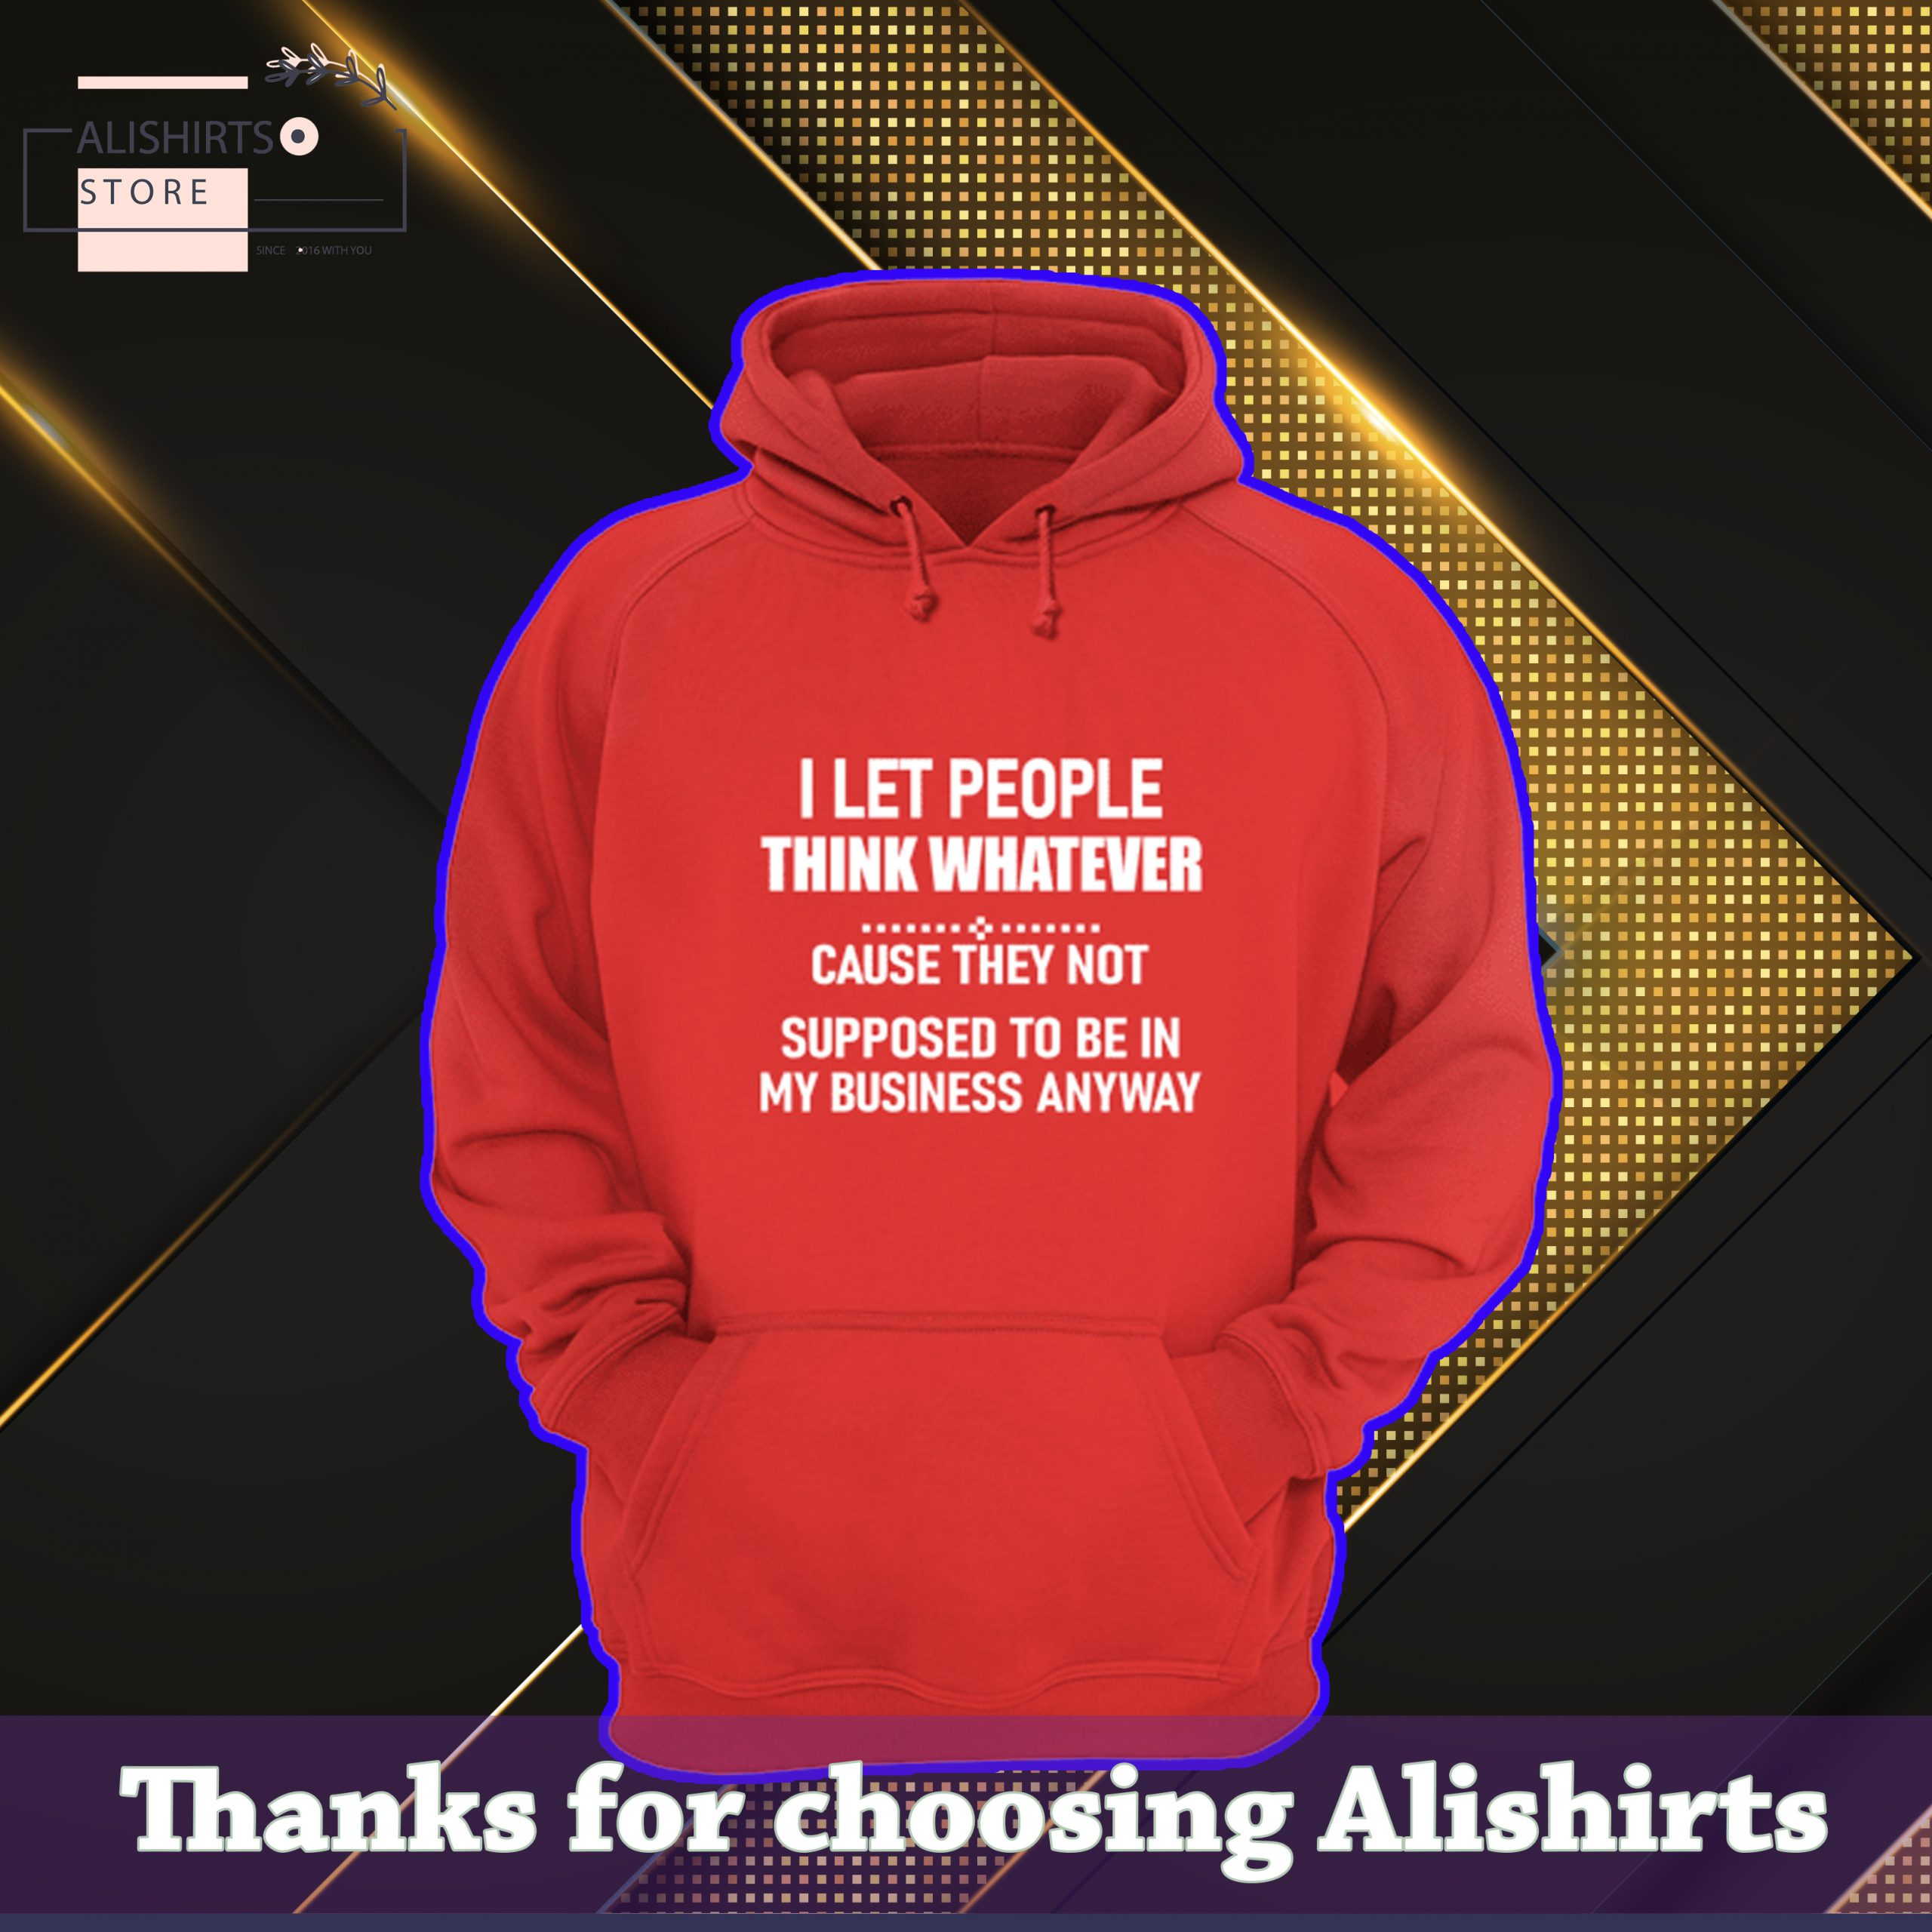 I Let People Think Whatever Cause They Not Supposed To Be In My Business Anyway Hoodie